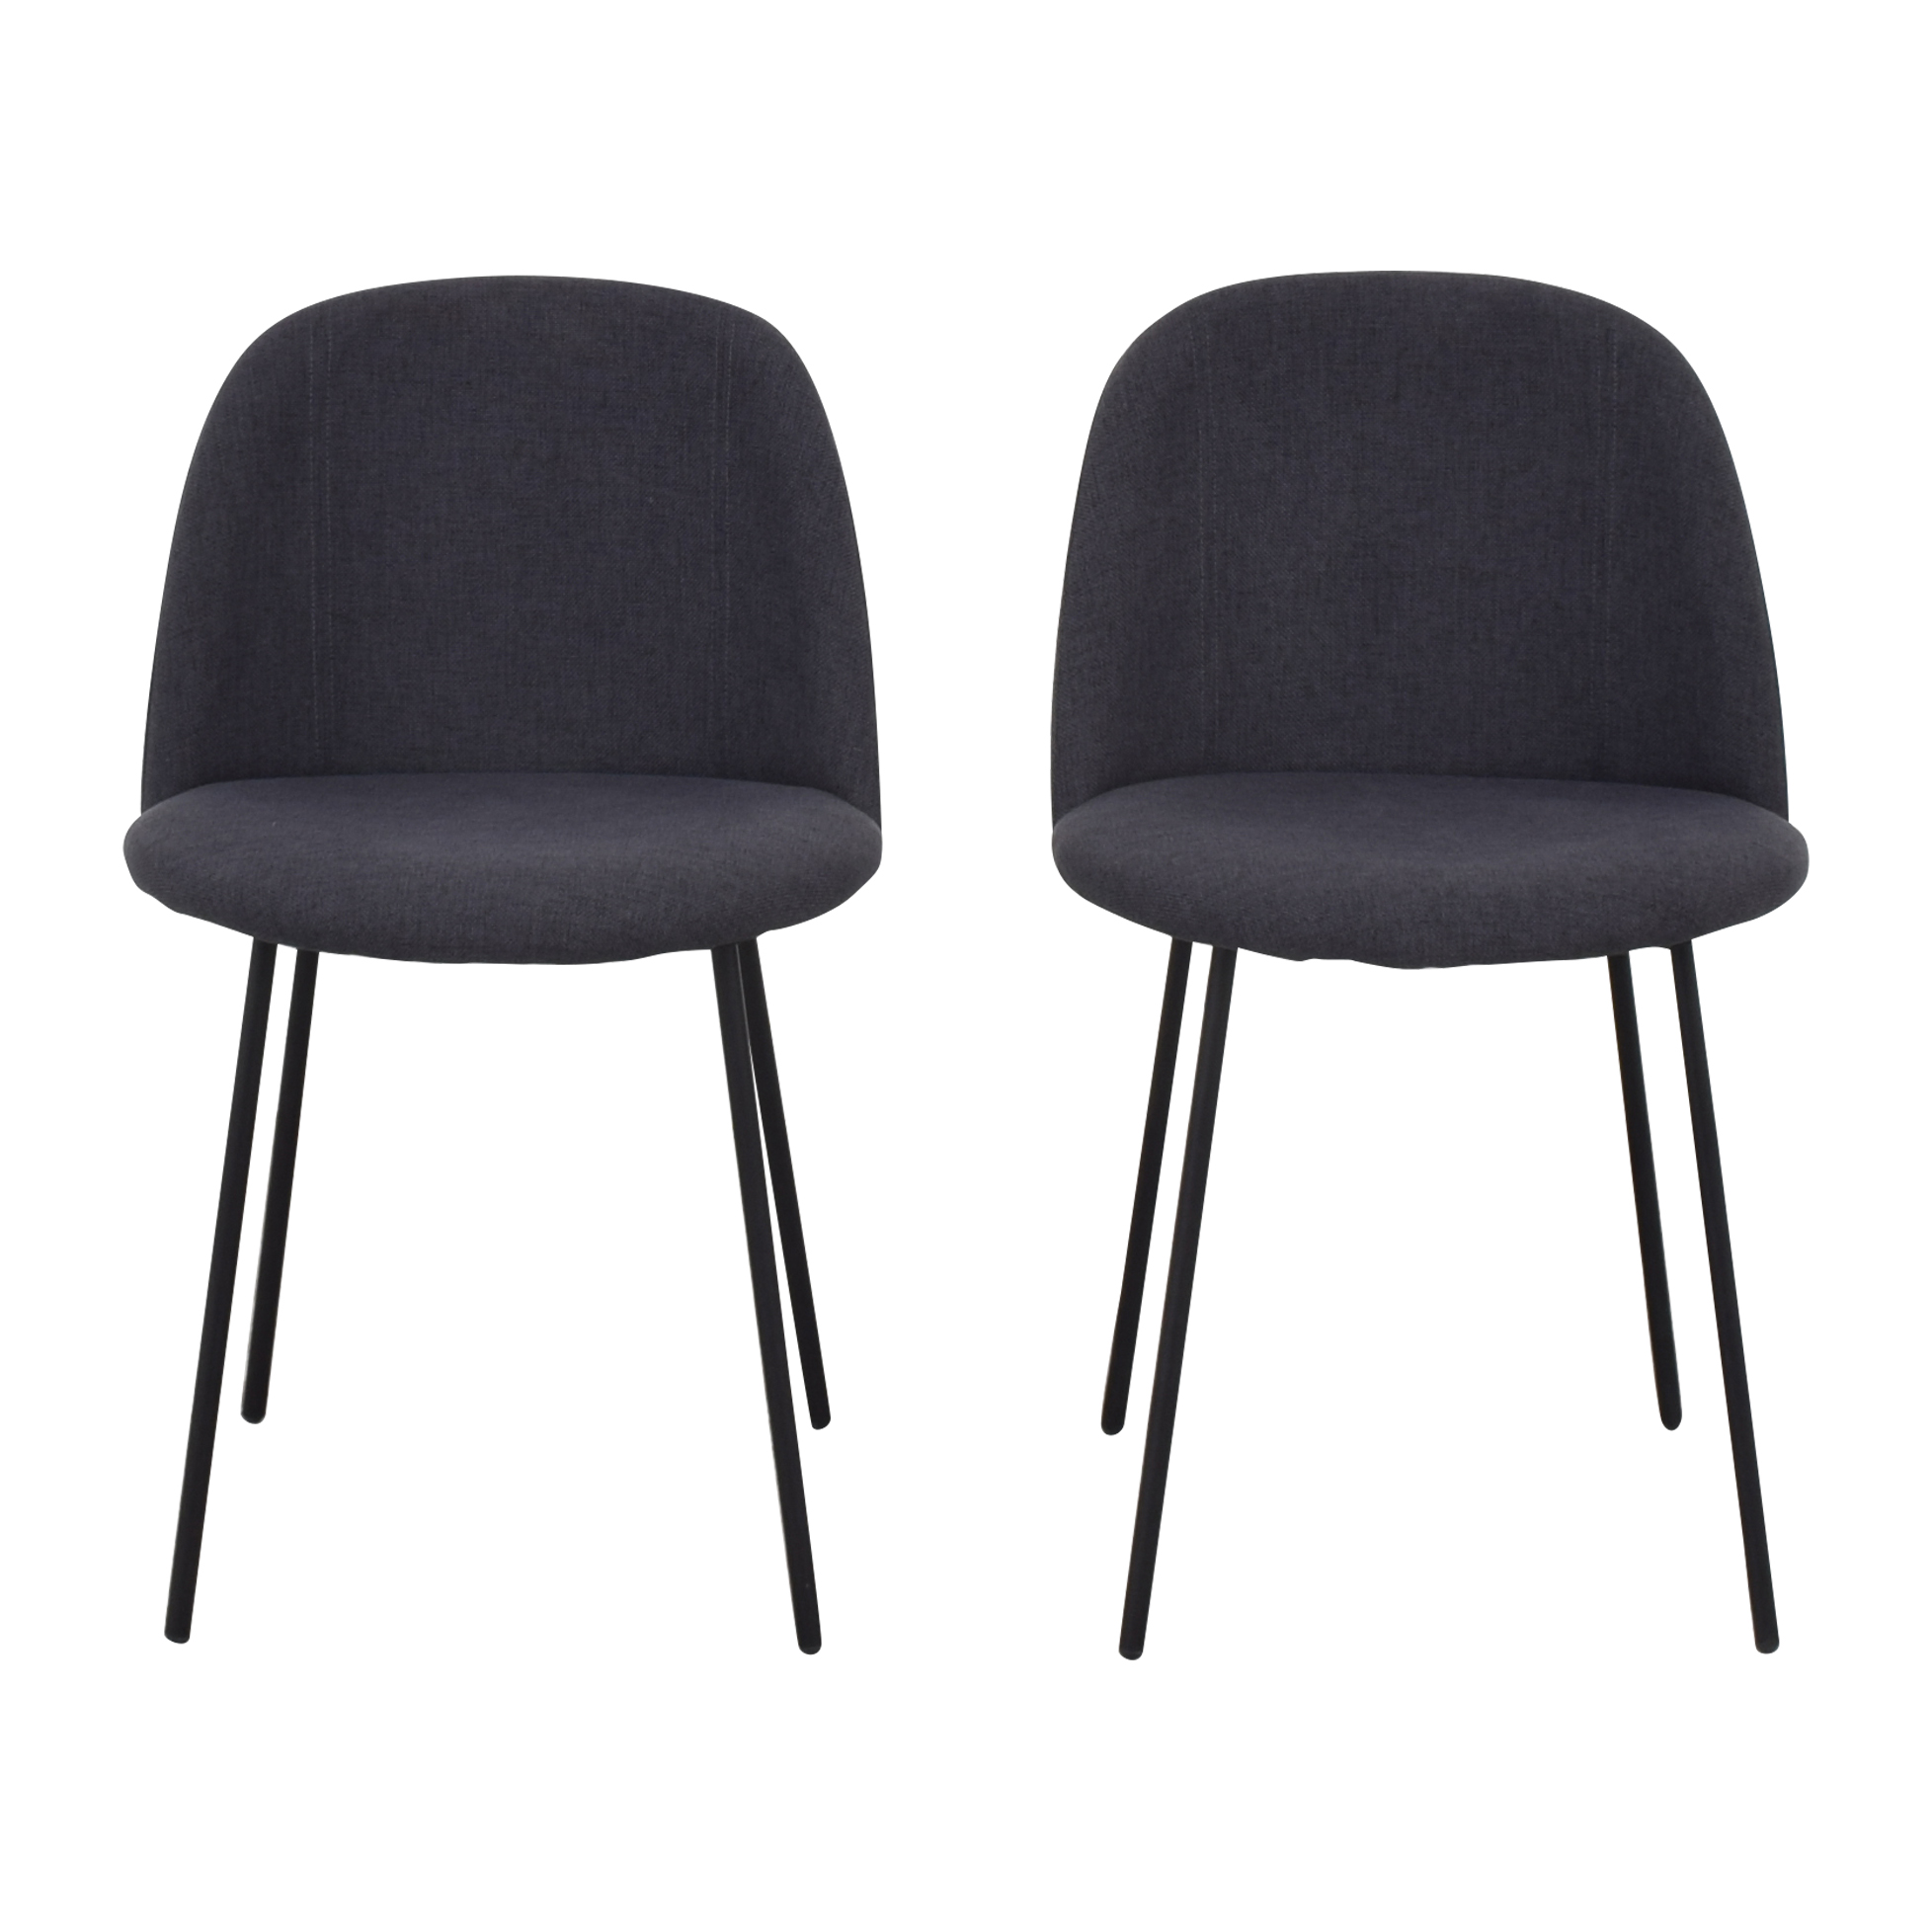 Article Article Ceres Dining Chairs for sale